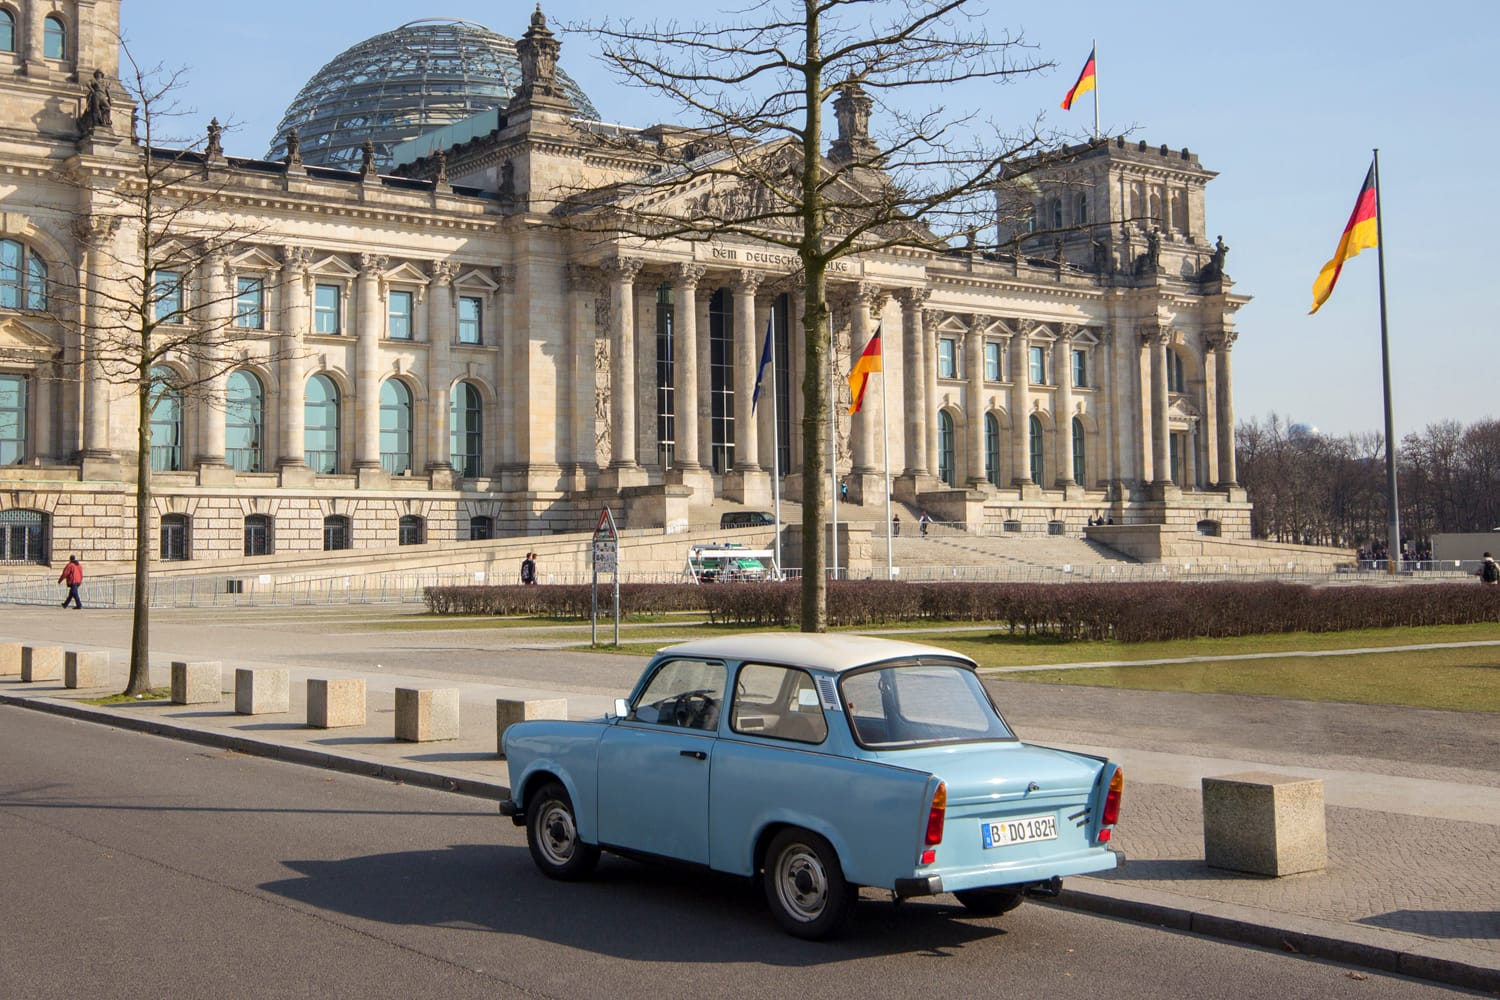 Trabi Car in front of the Reichstag Building in Berlin, Germany